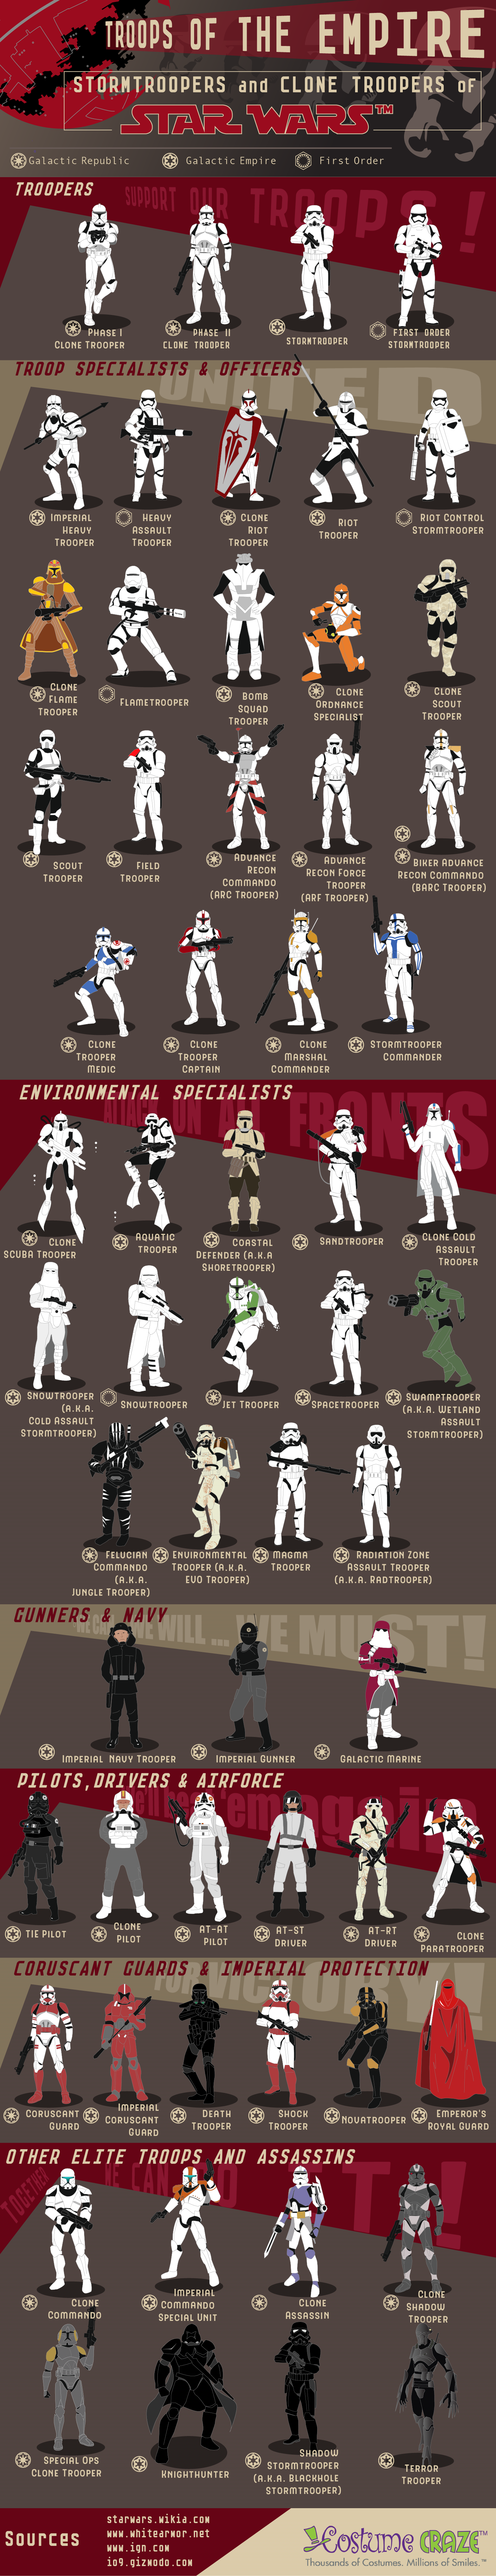 A Compendium of Stormtroopers and Clone Troopers from Star Wars Infographic